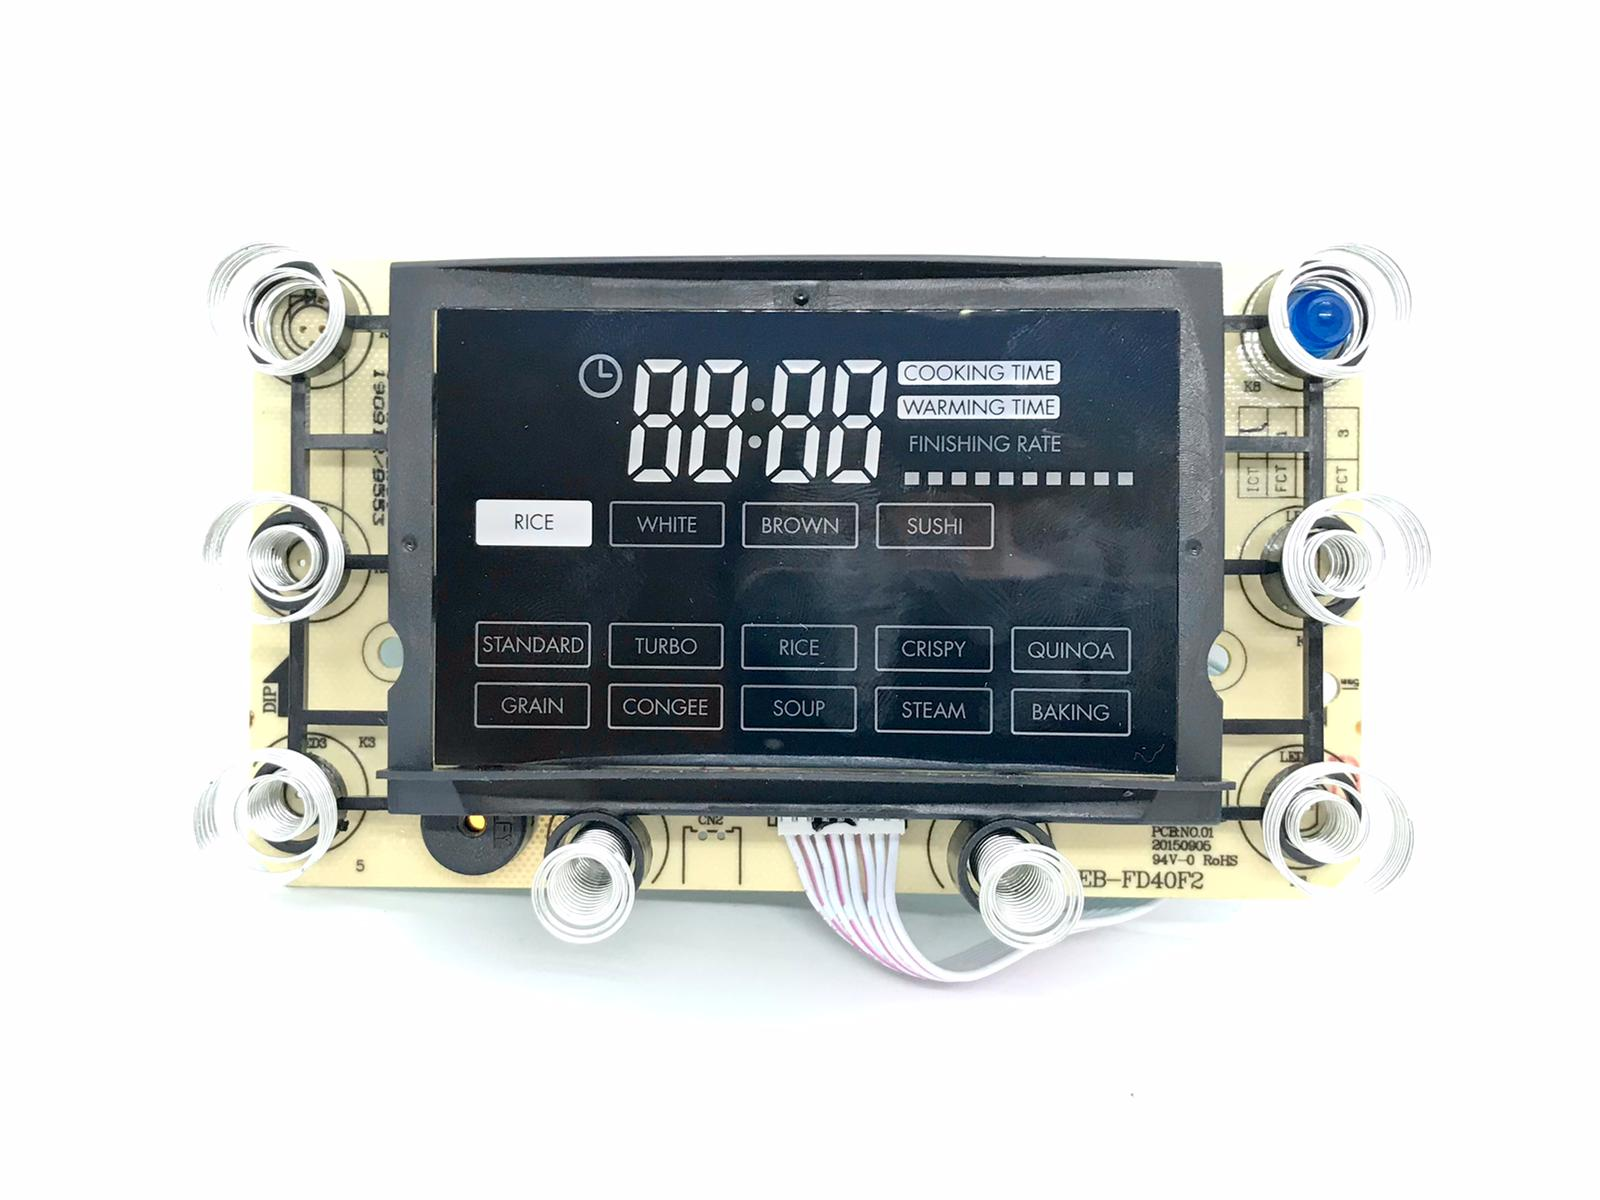 Control Display Board Reishunger 538-DRK